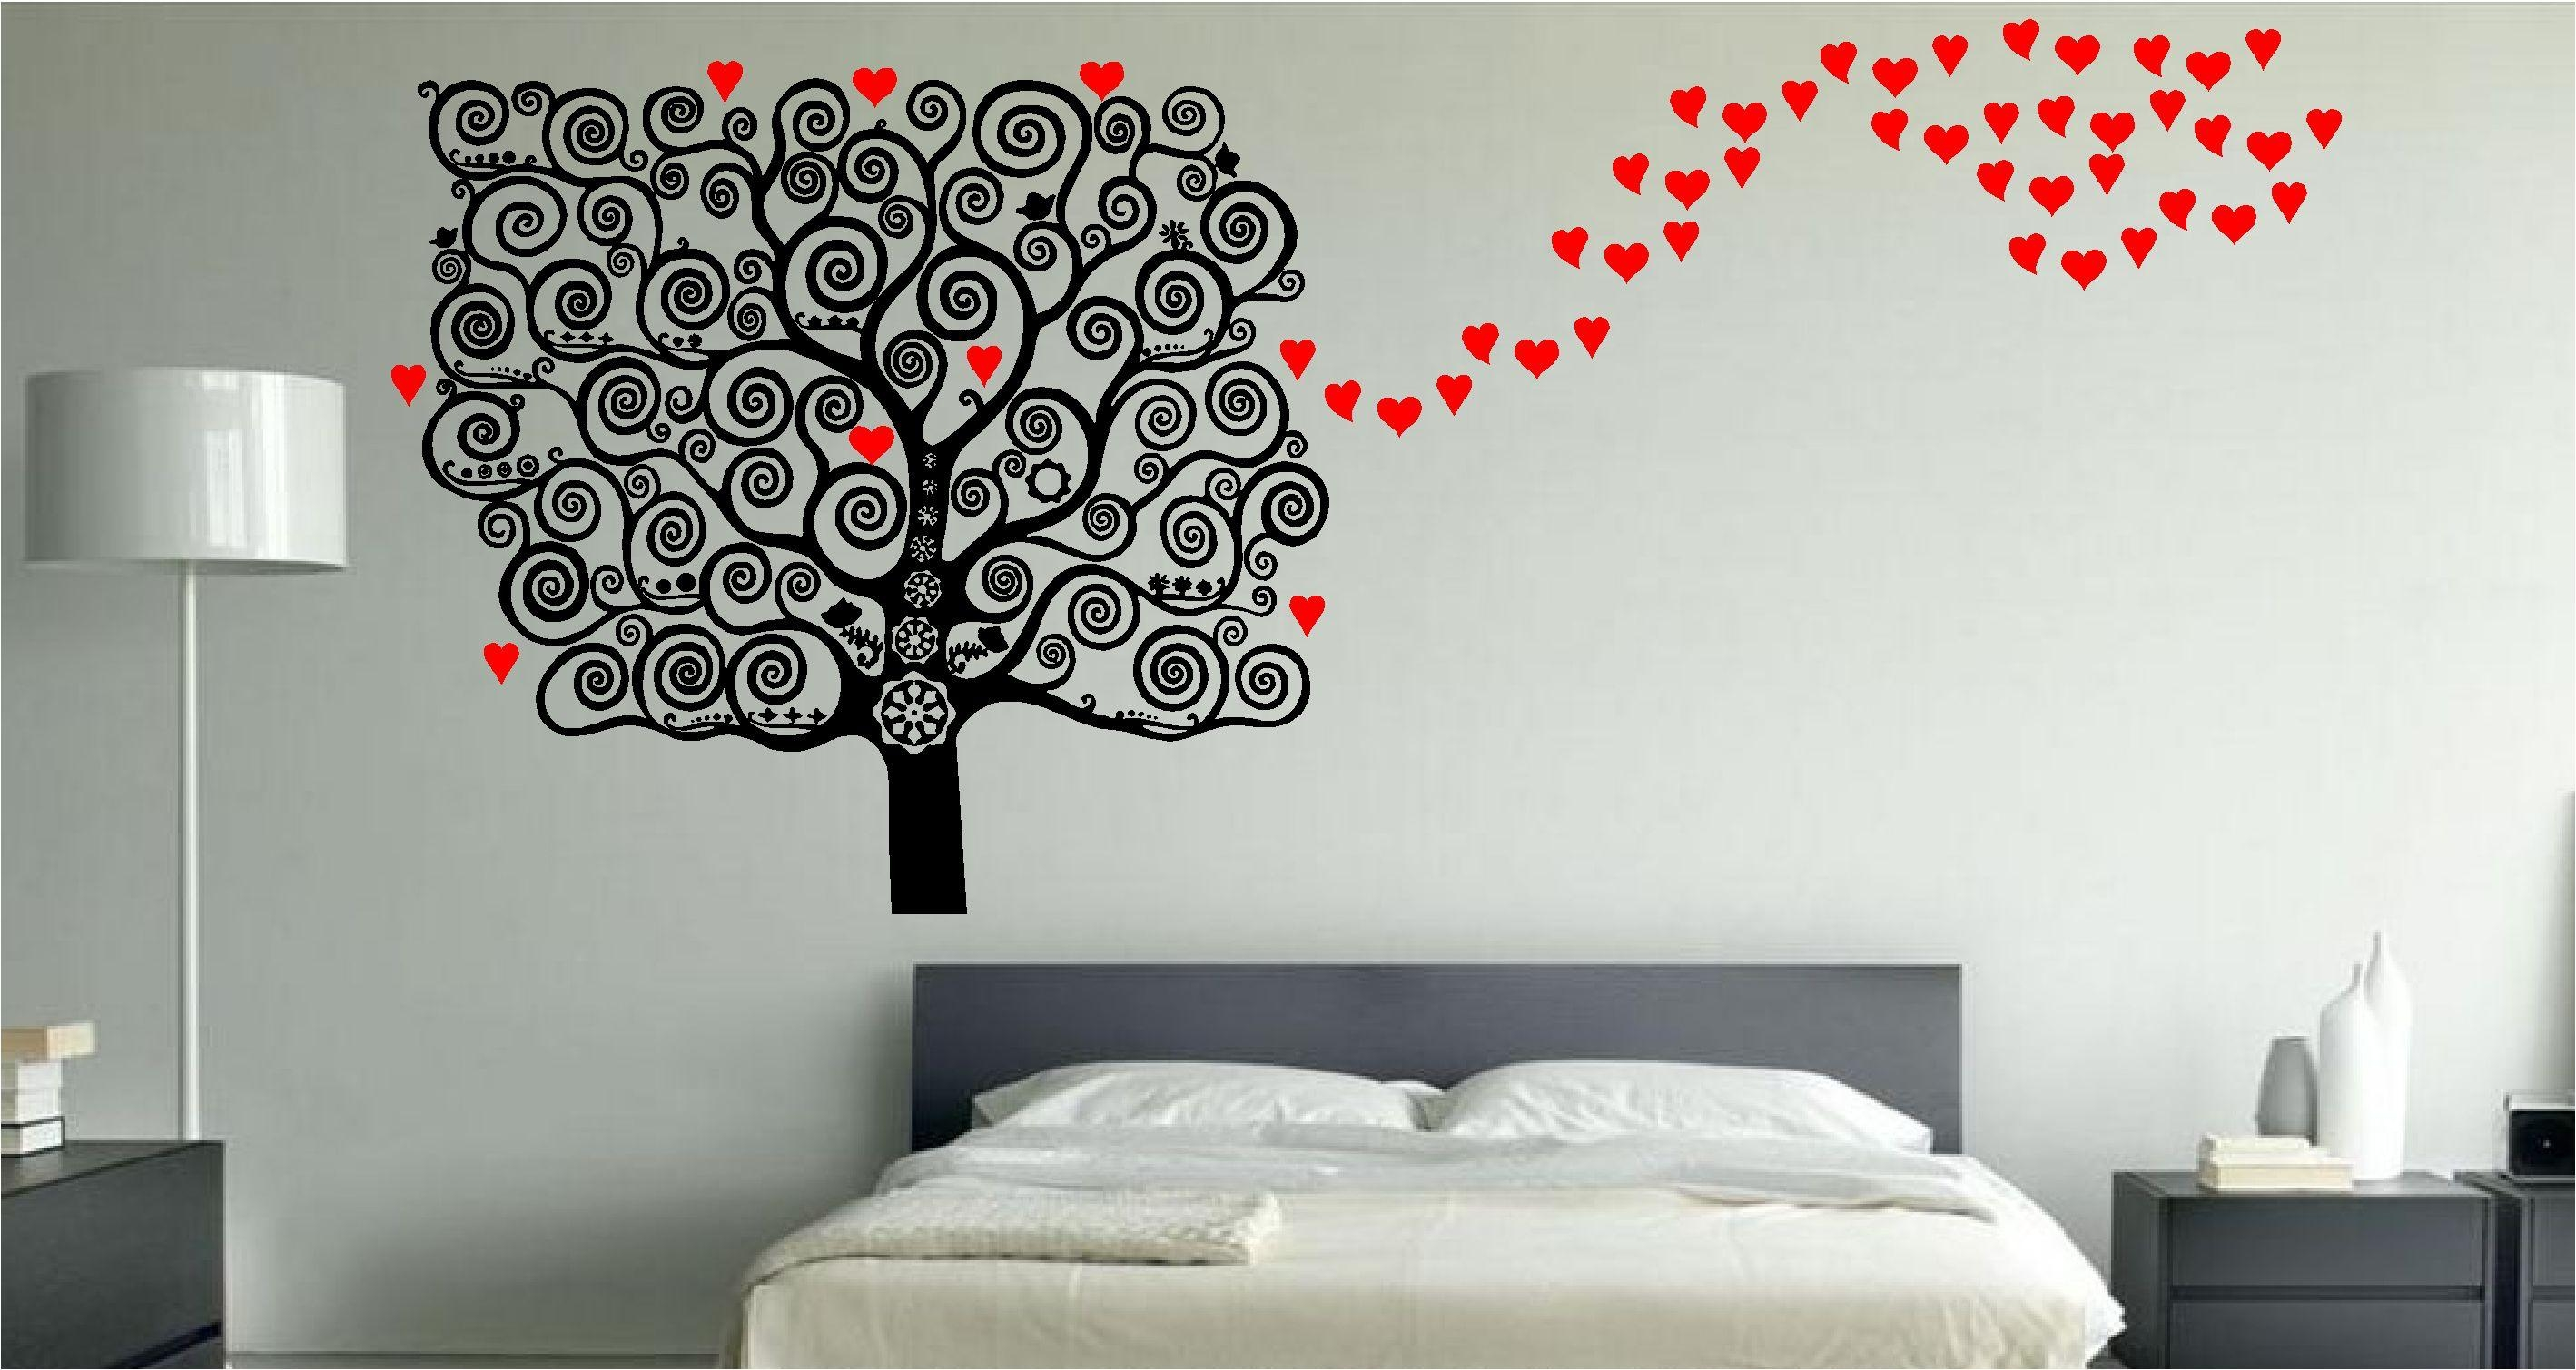 Special Bedroom Wall Art Theme For Cozy And Decorative Look Regarding Wall Art For Bedroom (View 12 of 20)